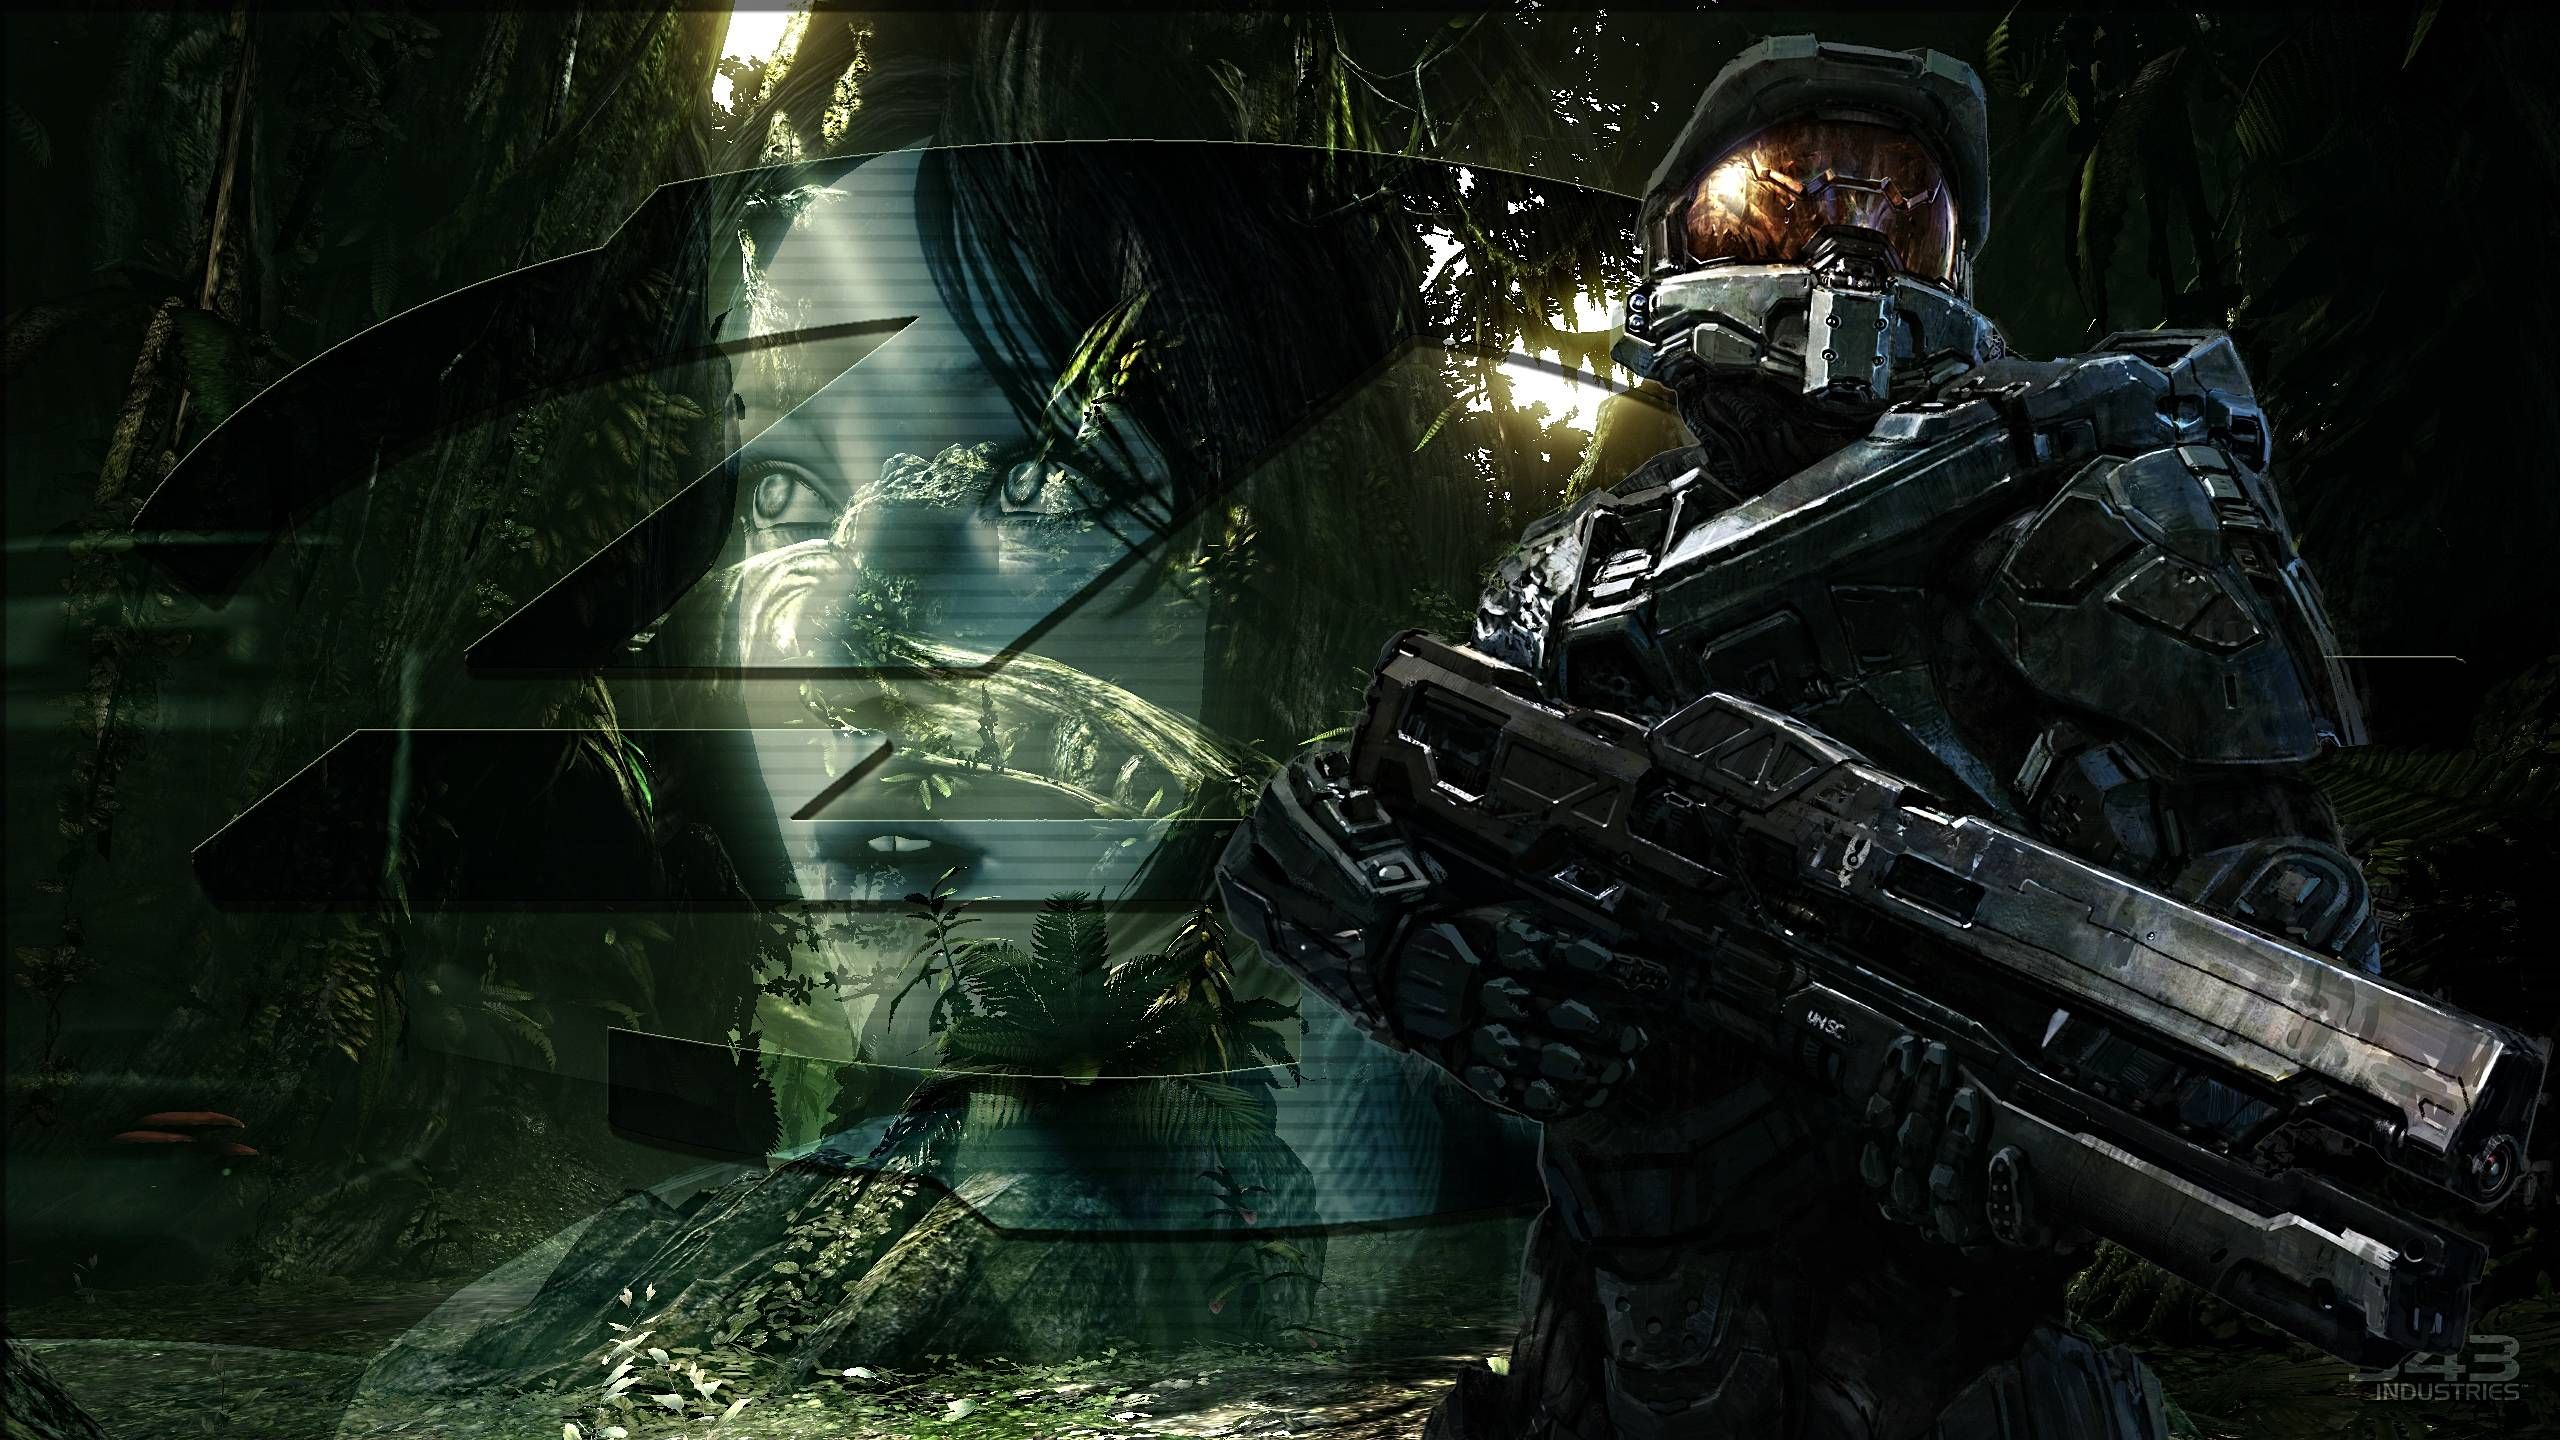 Halo 4 Backgrounds HD  Epic Car Wallpapers 2560x1440